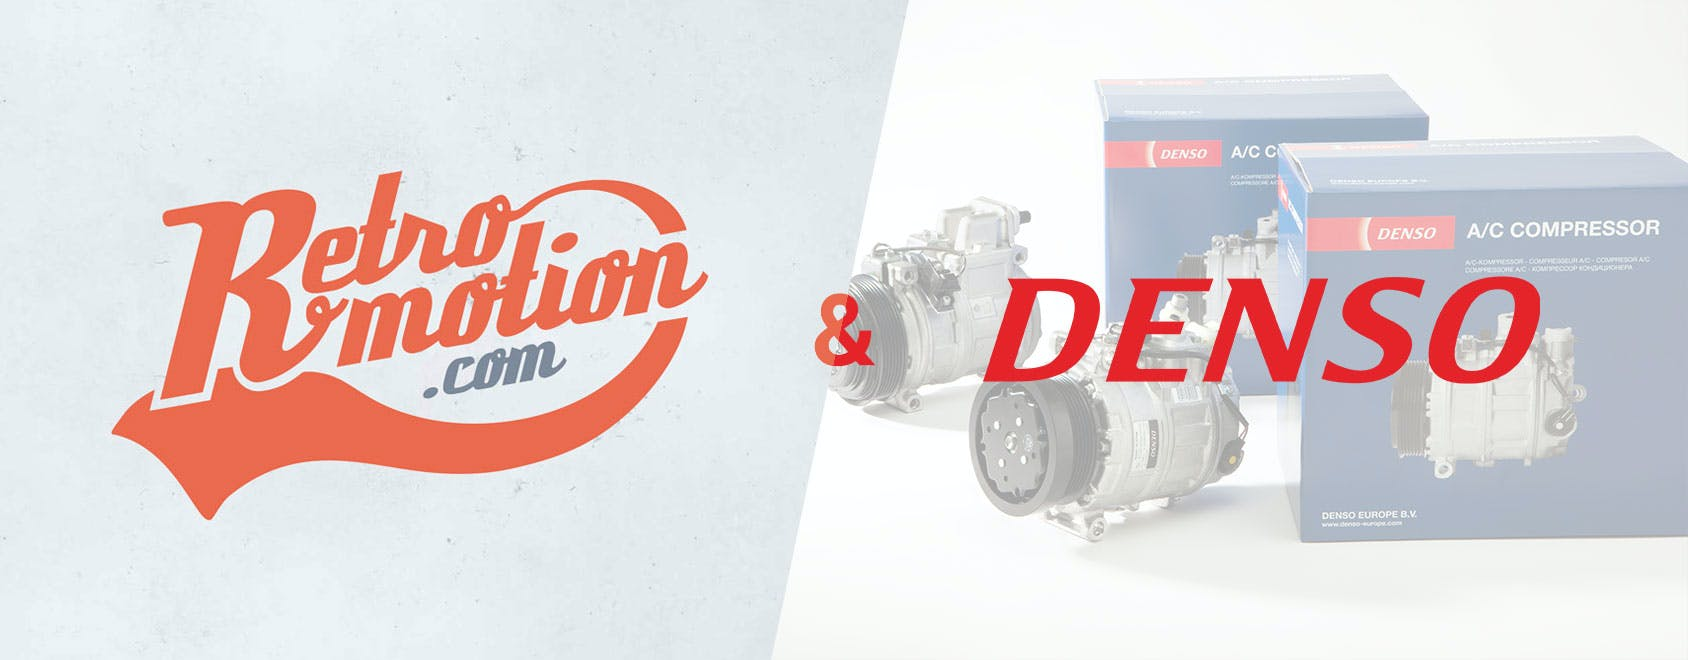 Partner-Spotlight: Retromotion & Denso